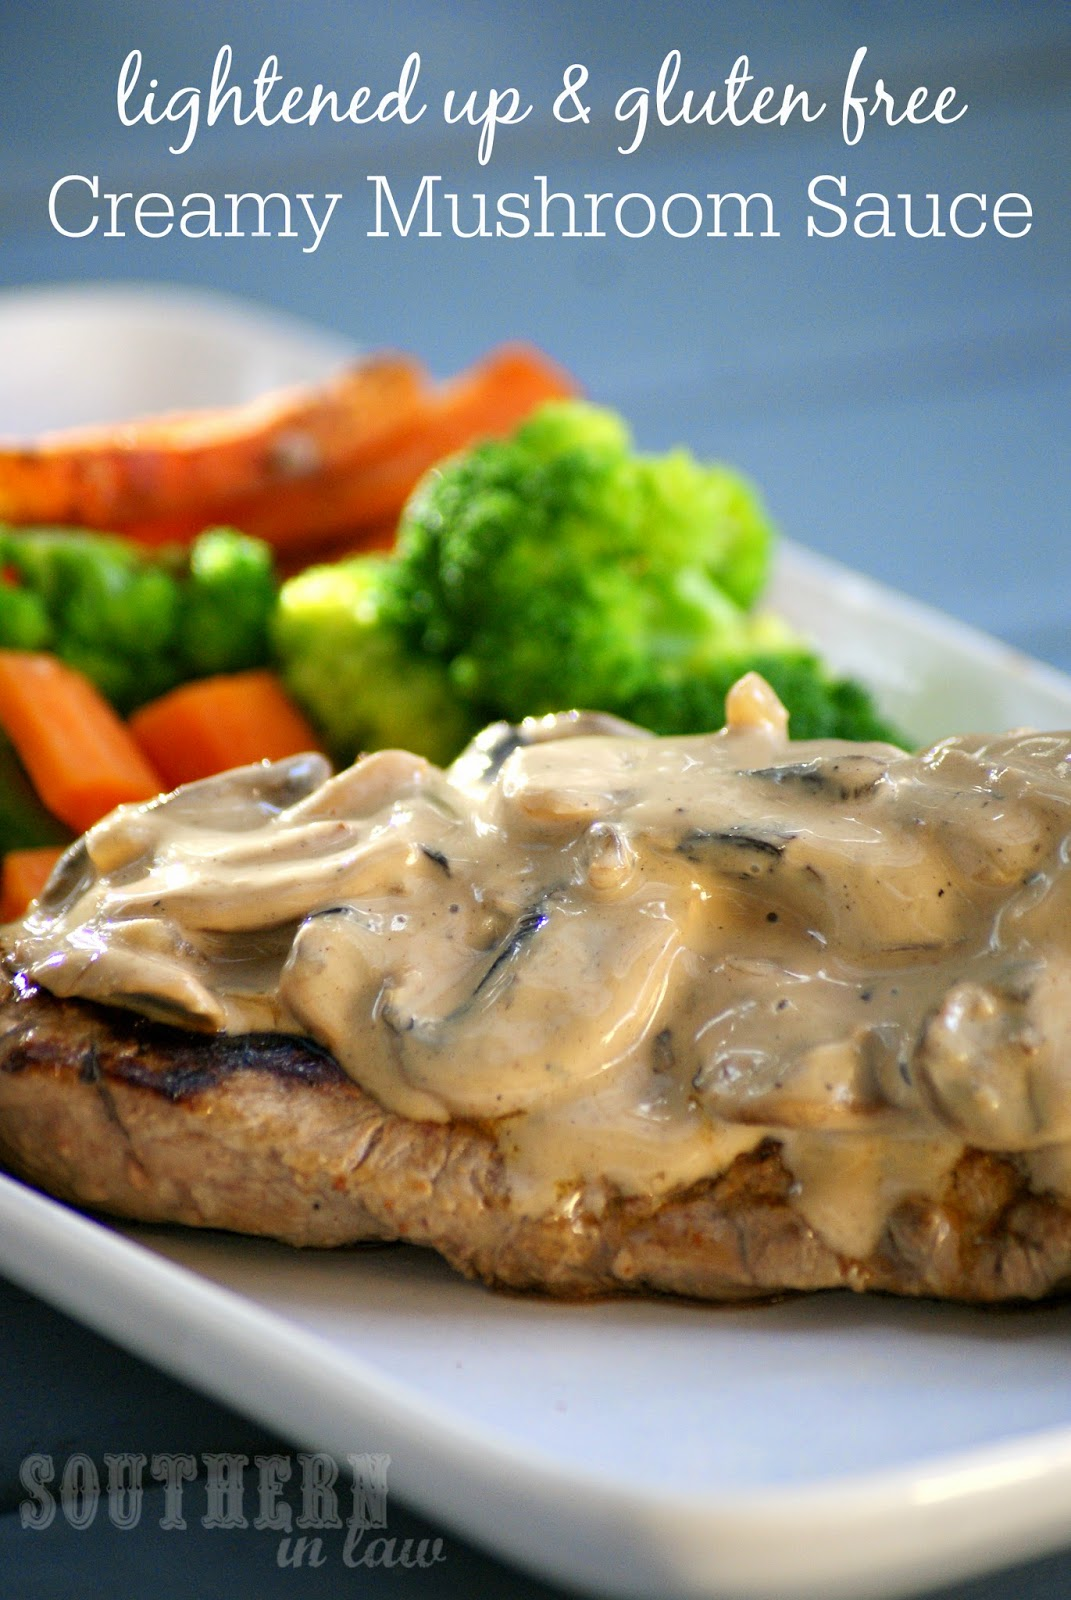 Southern In Law: Recipe: Lightened Up Creamy Mushroom Sauce for Steak or Chicken